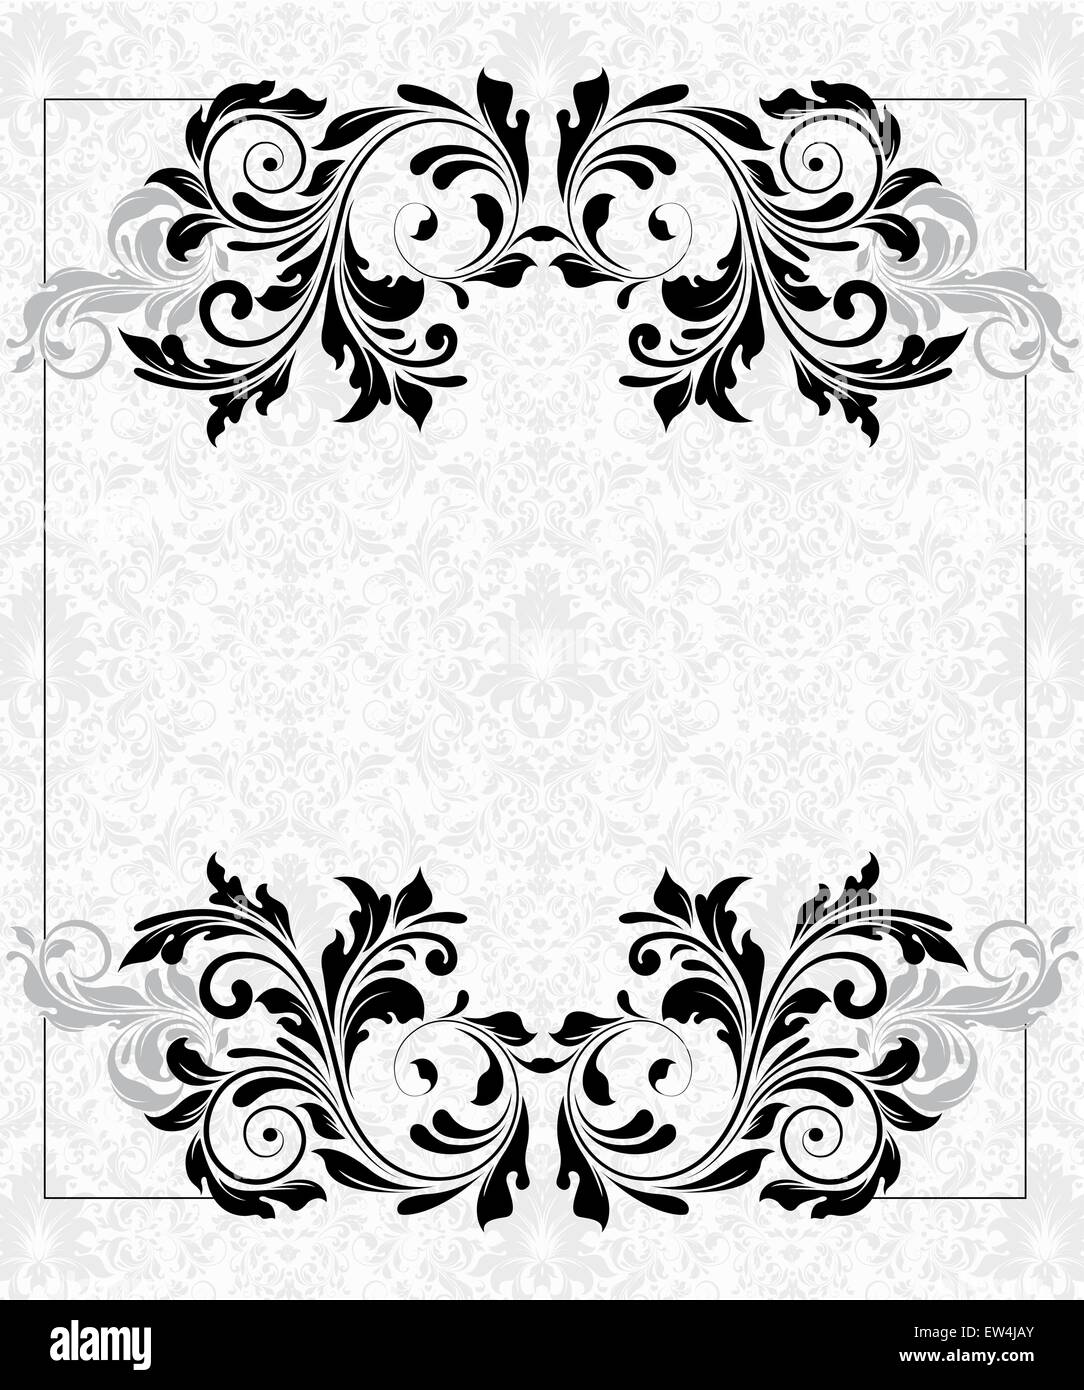 Vintage invitation card with ornate elegant abstract floral design, black and gray flowers on light gray and white - Stock Image